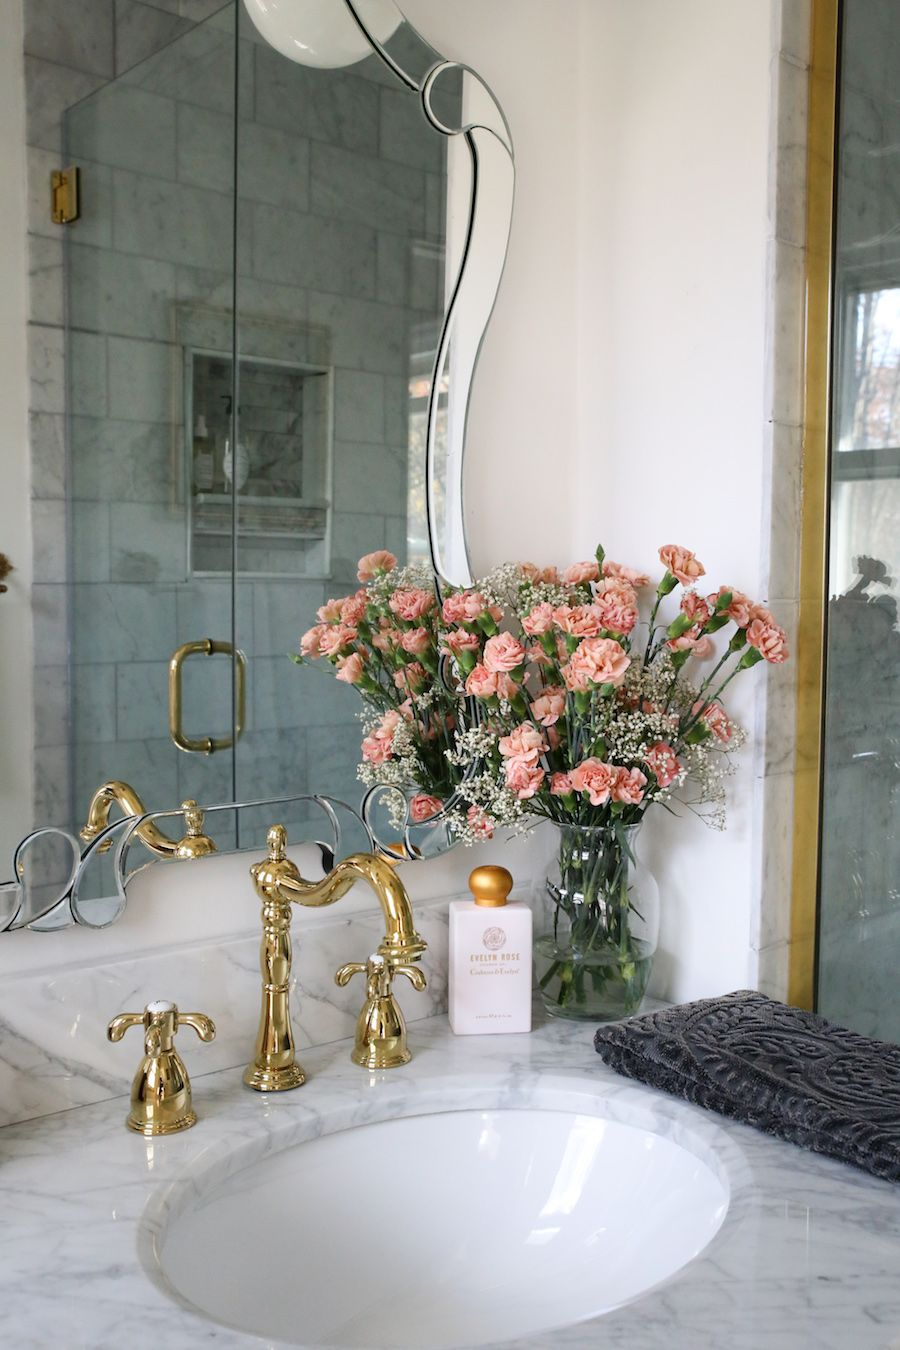 We See A Lot Of Bathroom Remodels But This One Takes The Cake Dream Home Design Pretty Bathrooms Beautiful Bathrooms French decorating ideas bathrooms